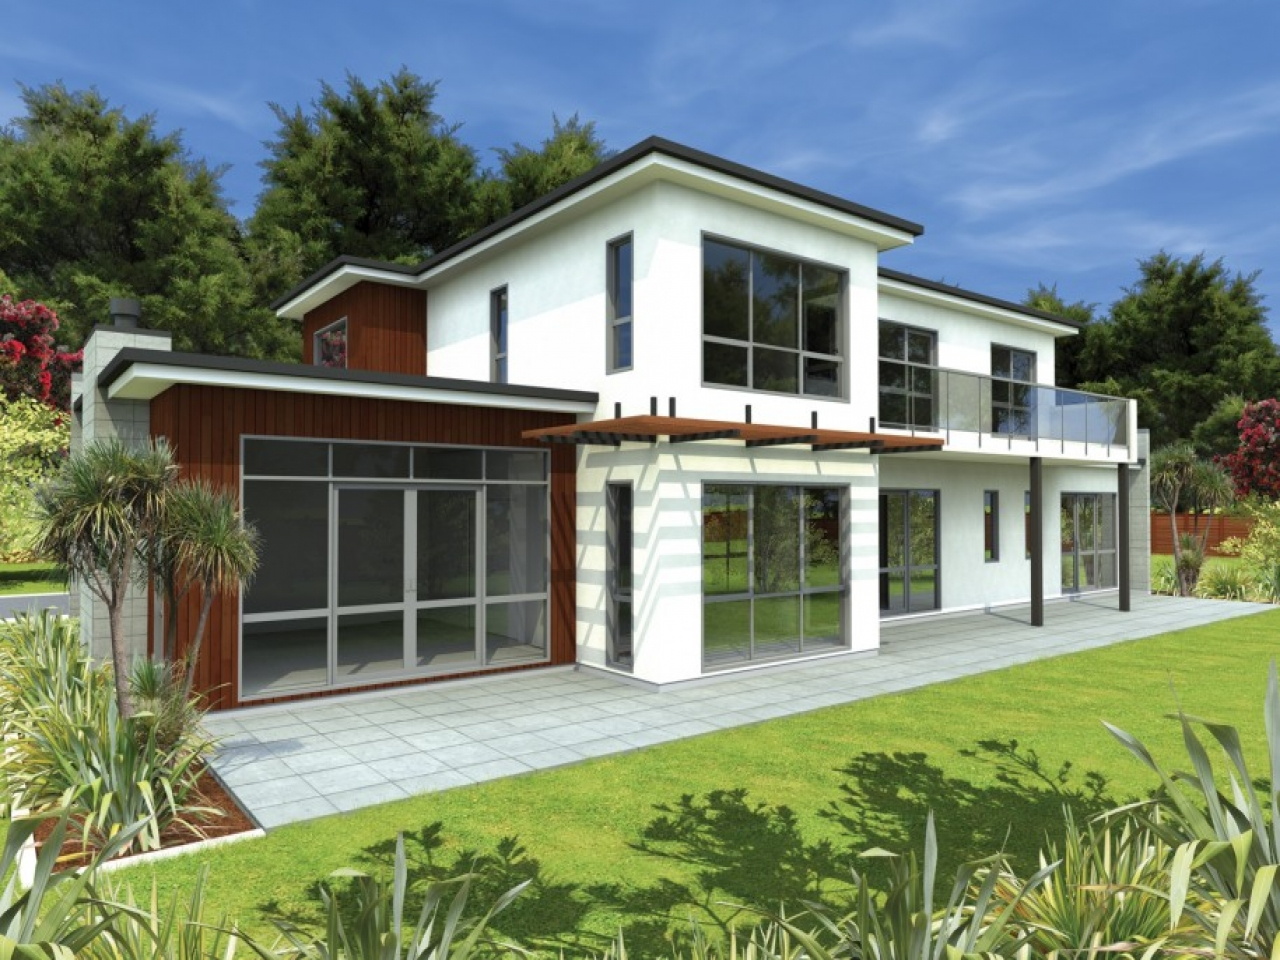 Modern bungalow house design simple house designs for Minimalist house design bungalow